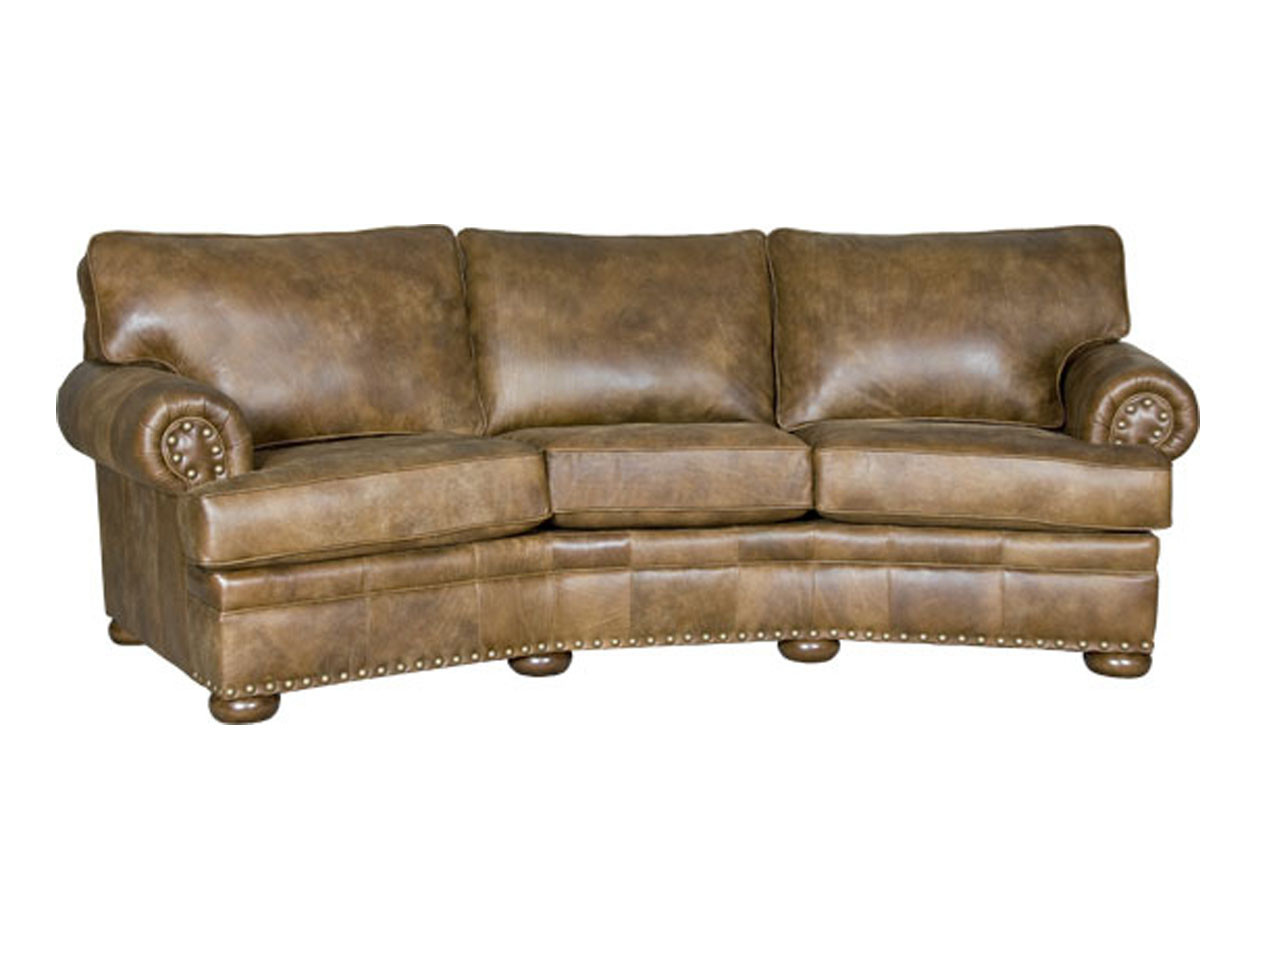 Leather custom order conversation sofa by Mayo